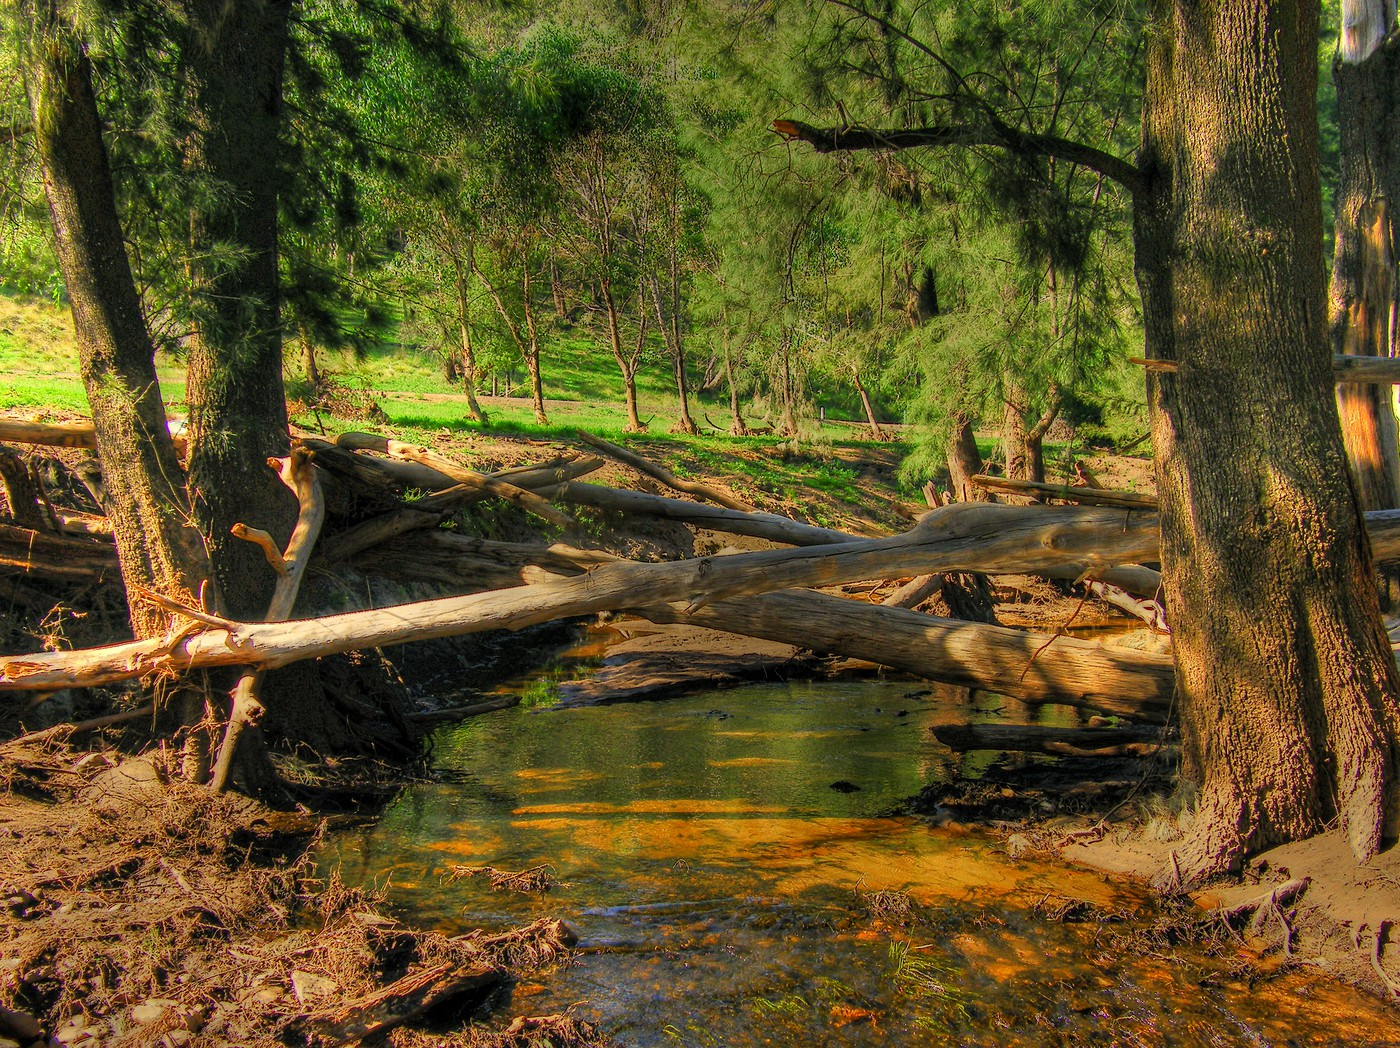 Flood damage along the Wombelong Creek 009